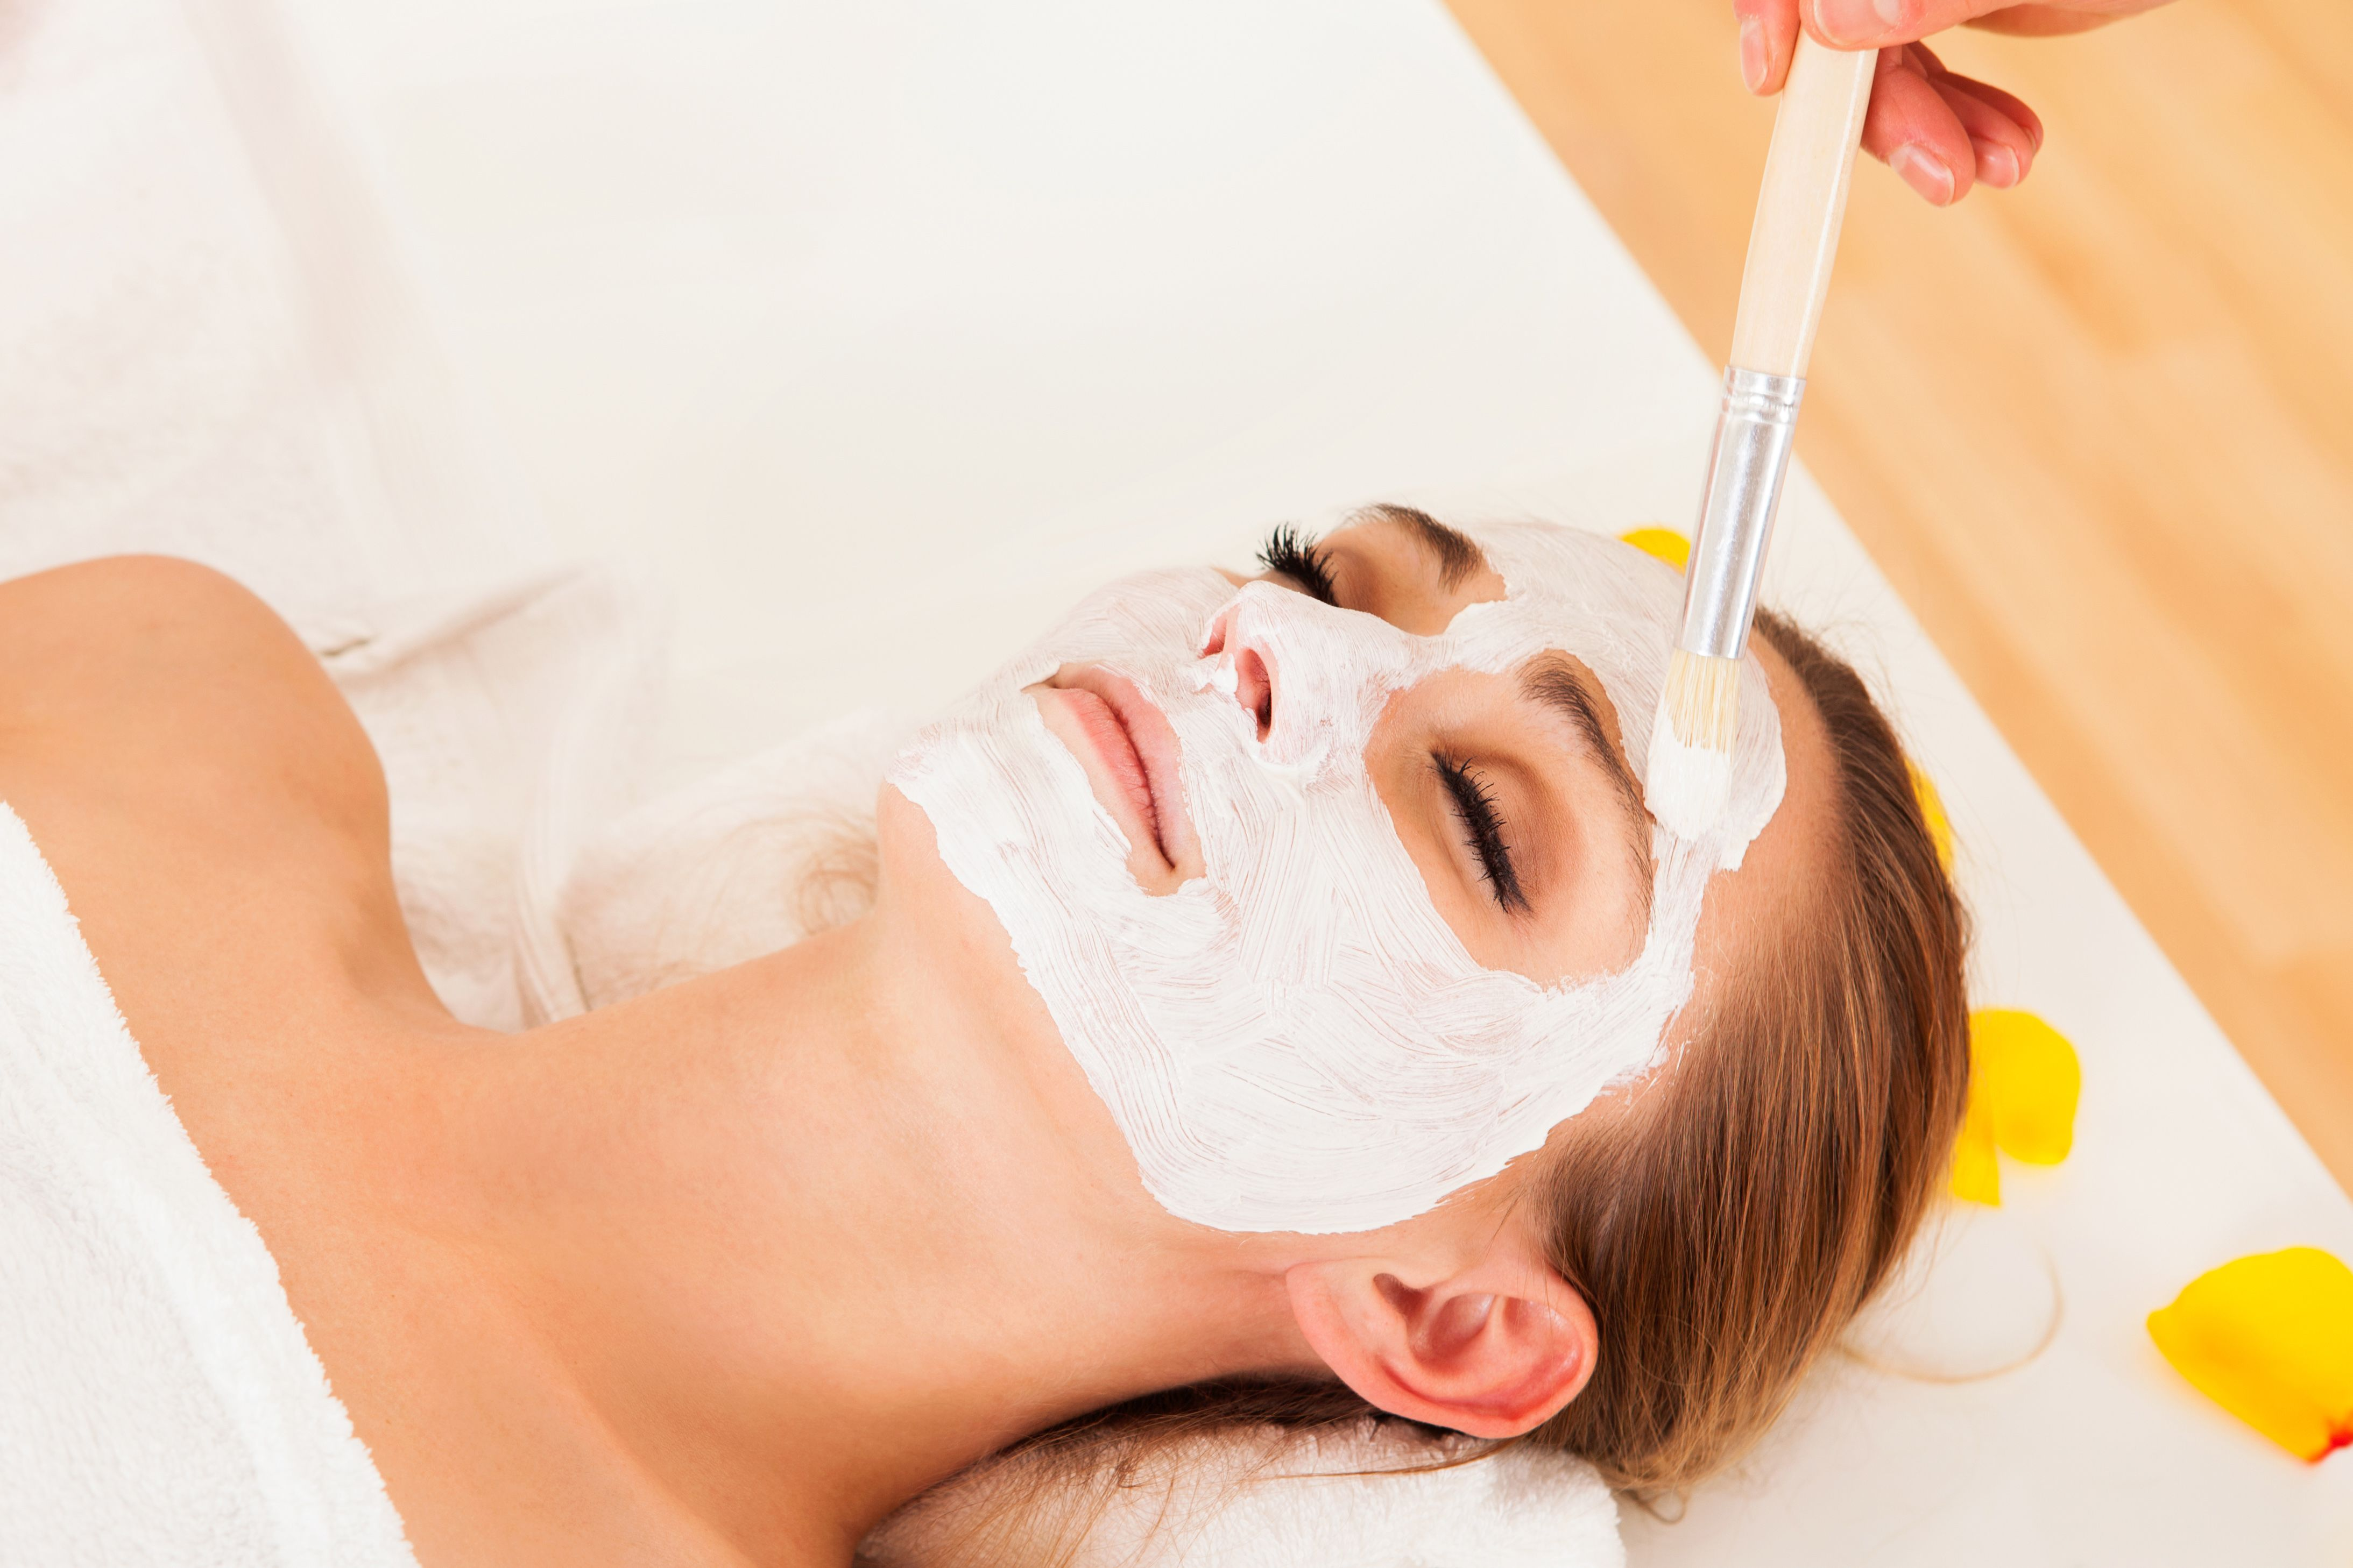 A chemical peel solution applied to the face